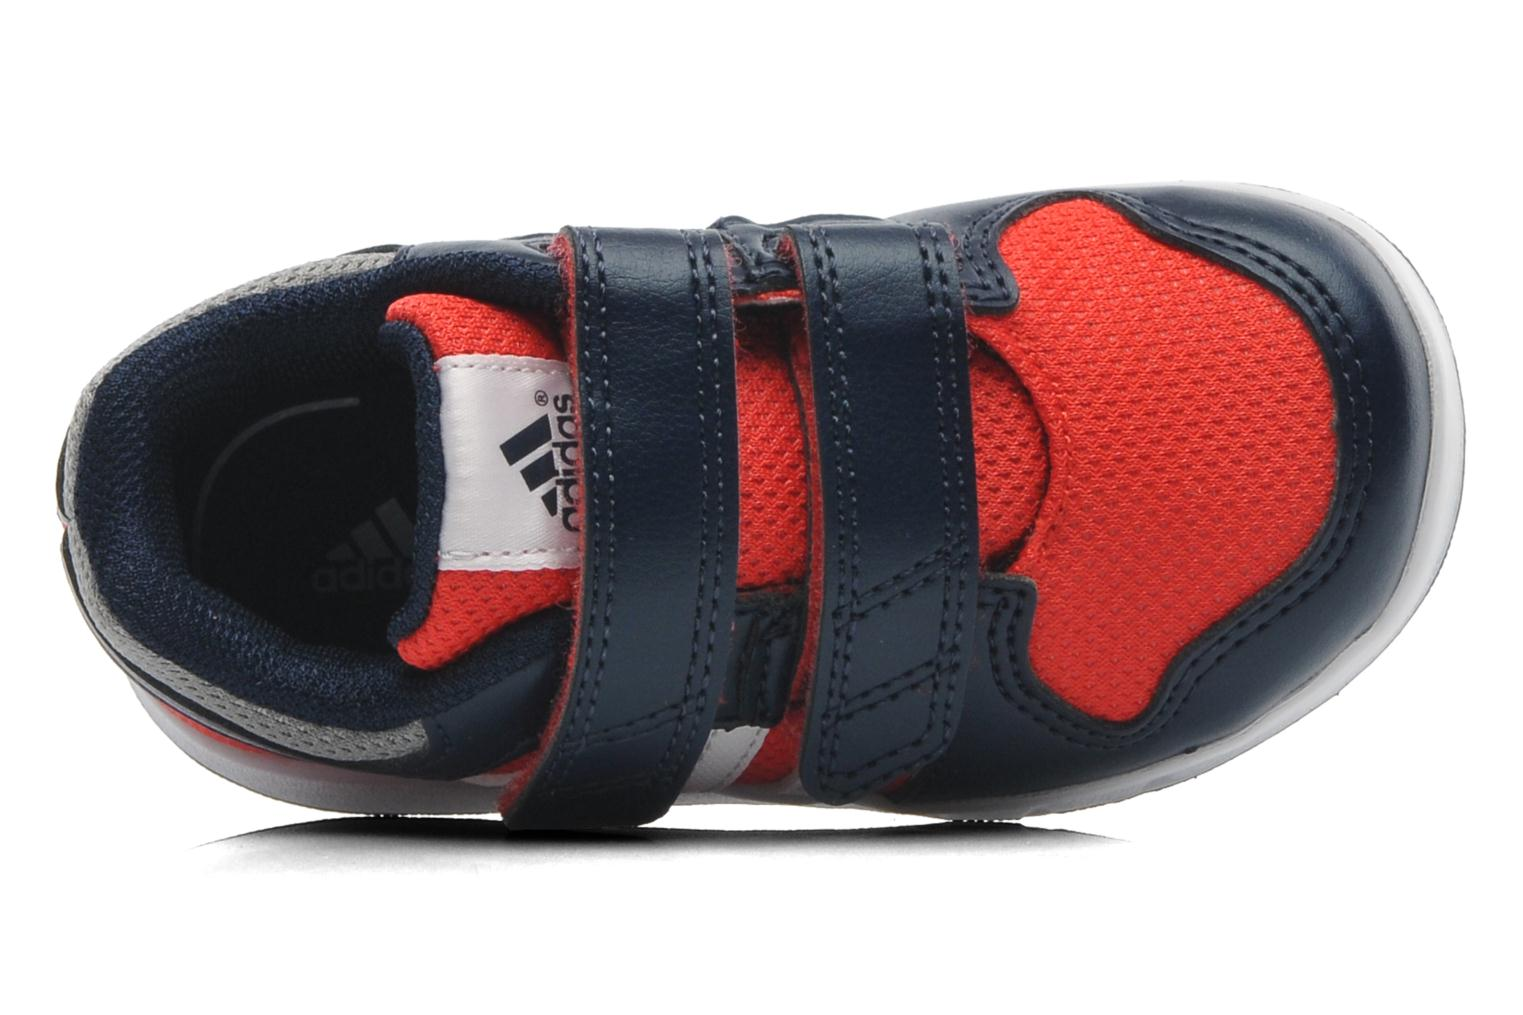 LK Trainer 6 CF I BRIGHT RED/COLLEGIATE NAVY/WHITE